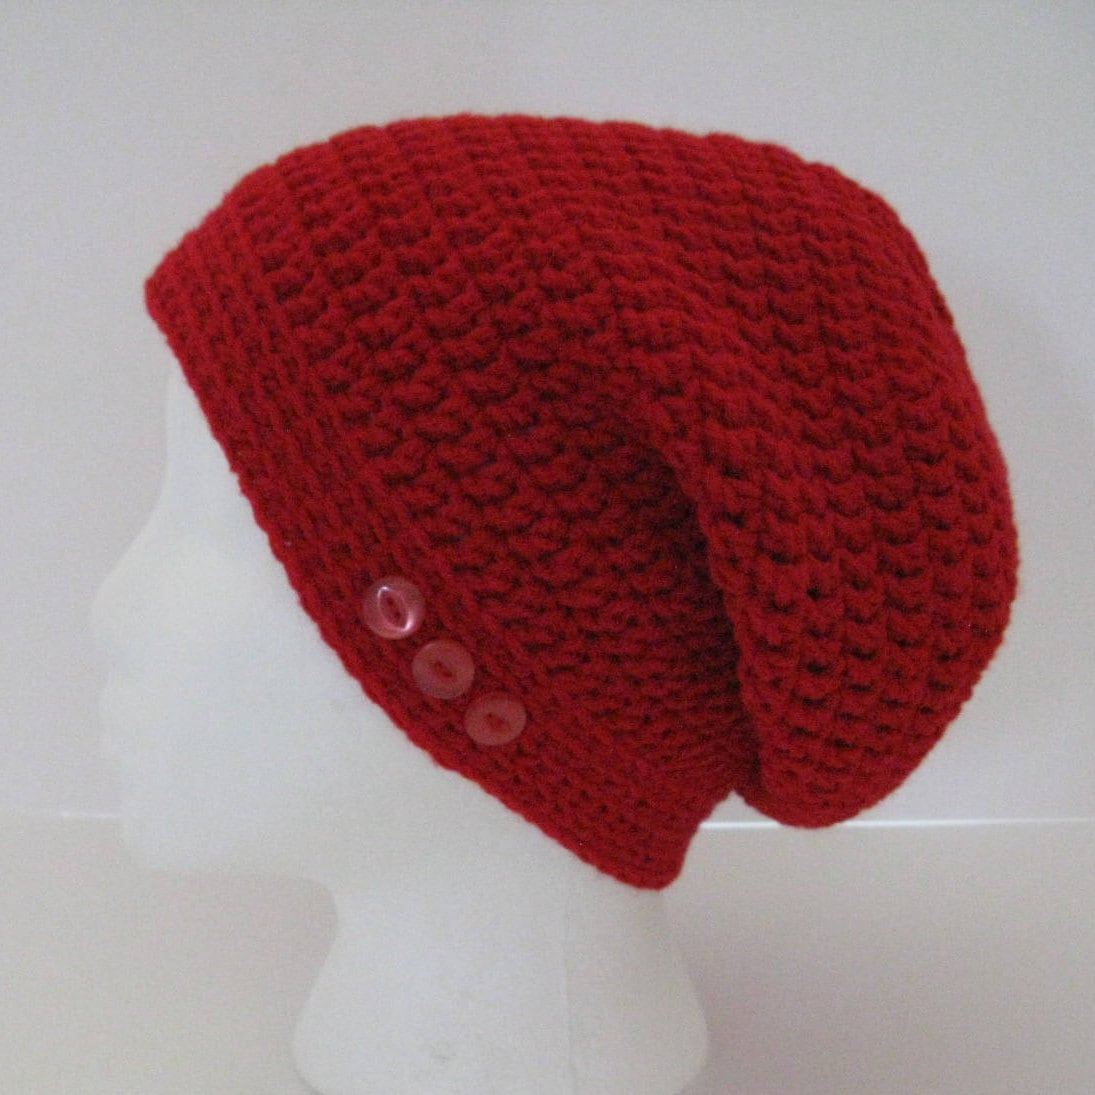 22cd5a30c Womens Crochet Slouchy Beanie Hat, Red Slouchy Hat, Womens Slouchy Hat,  Crochet Slouchy Hat, Red Hat, Slouchy Beanie, Gift for Women